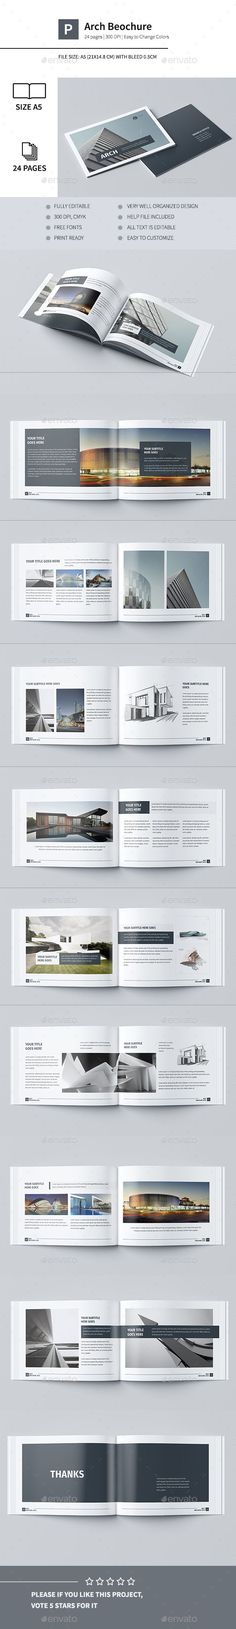 Modern Architecture Brochure 24 Pages A5 Template InDesign INDD. Download here: http://graphicriver.net/item/modern-architecture-brochure-24-pages-a5-/14633270?ref=ksioks